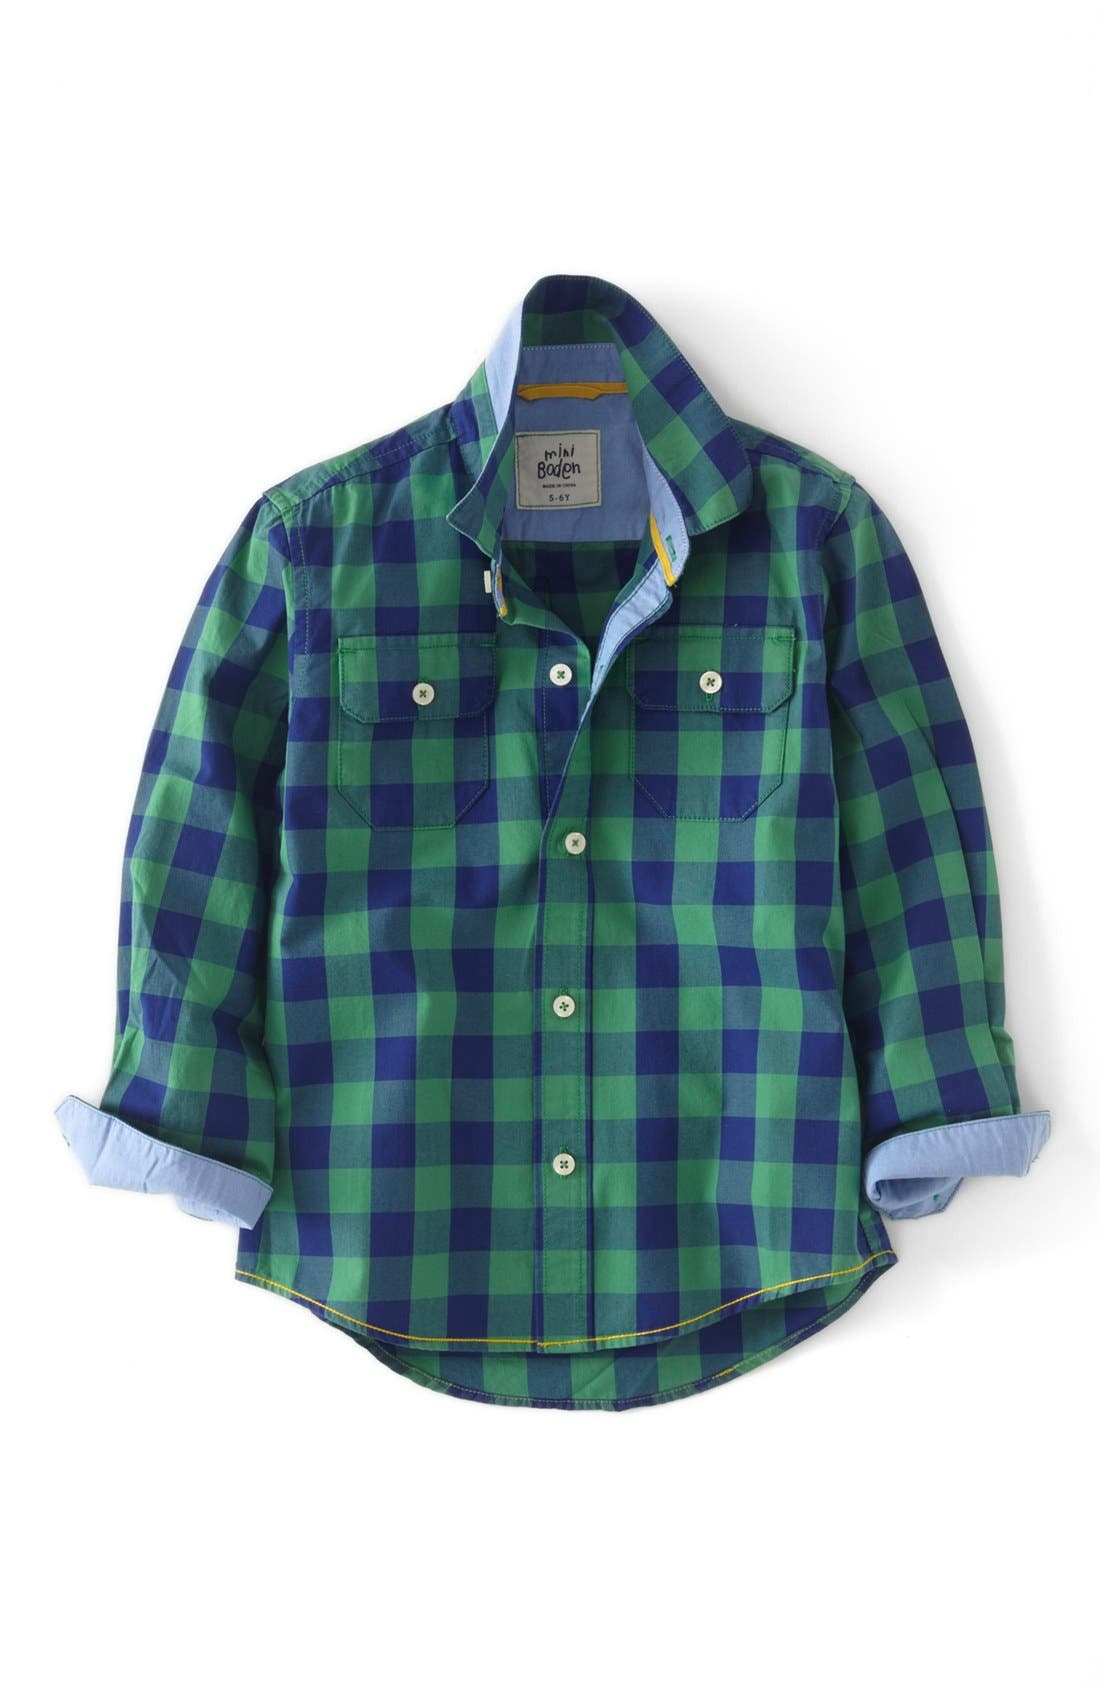 Alternate Image 1 Selected - Mini Boden Long Sleeve Sport Shirt (Toddler Boys, Little Boys & Big Boys)